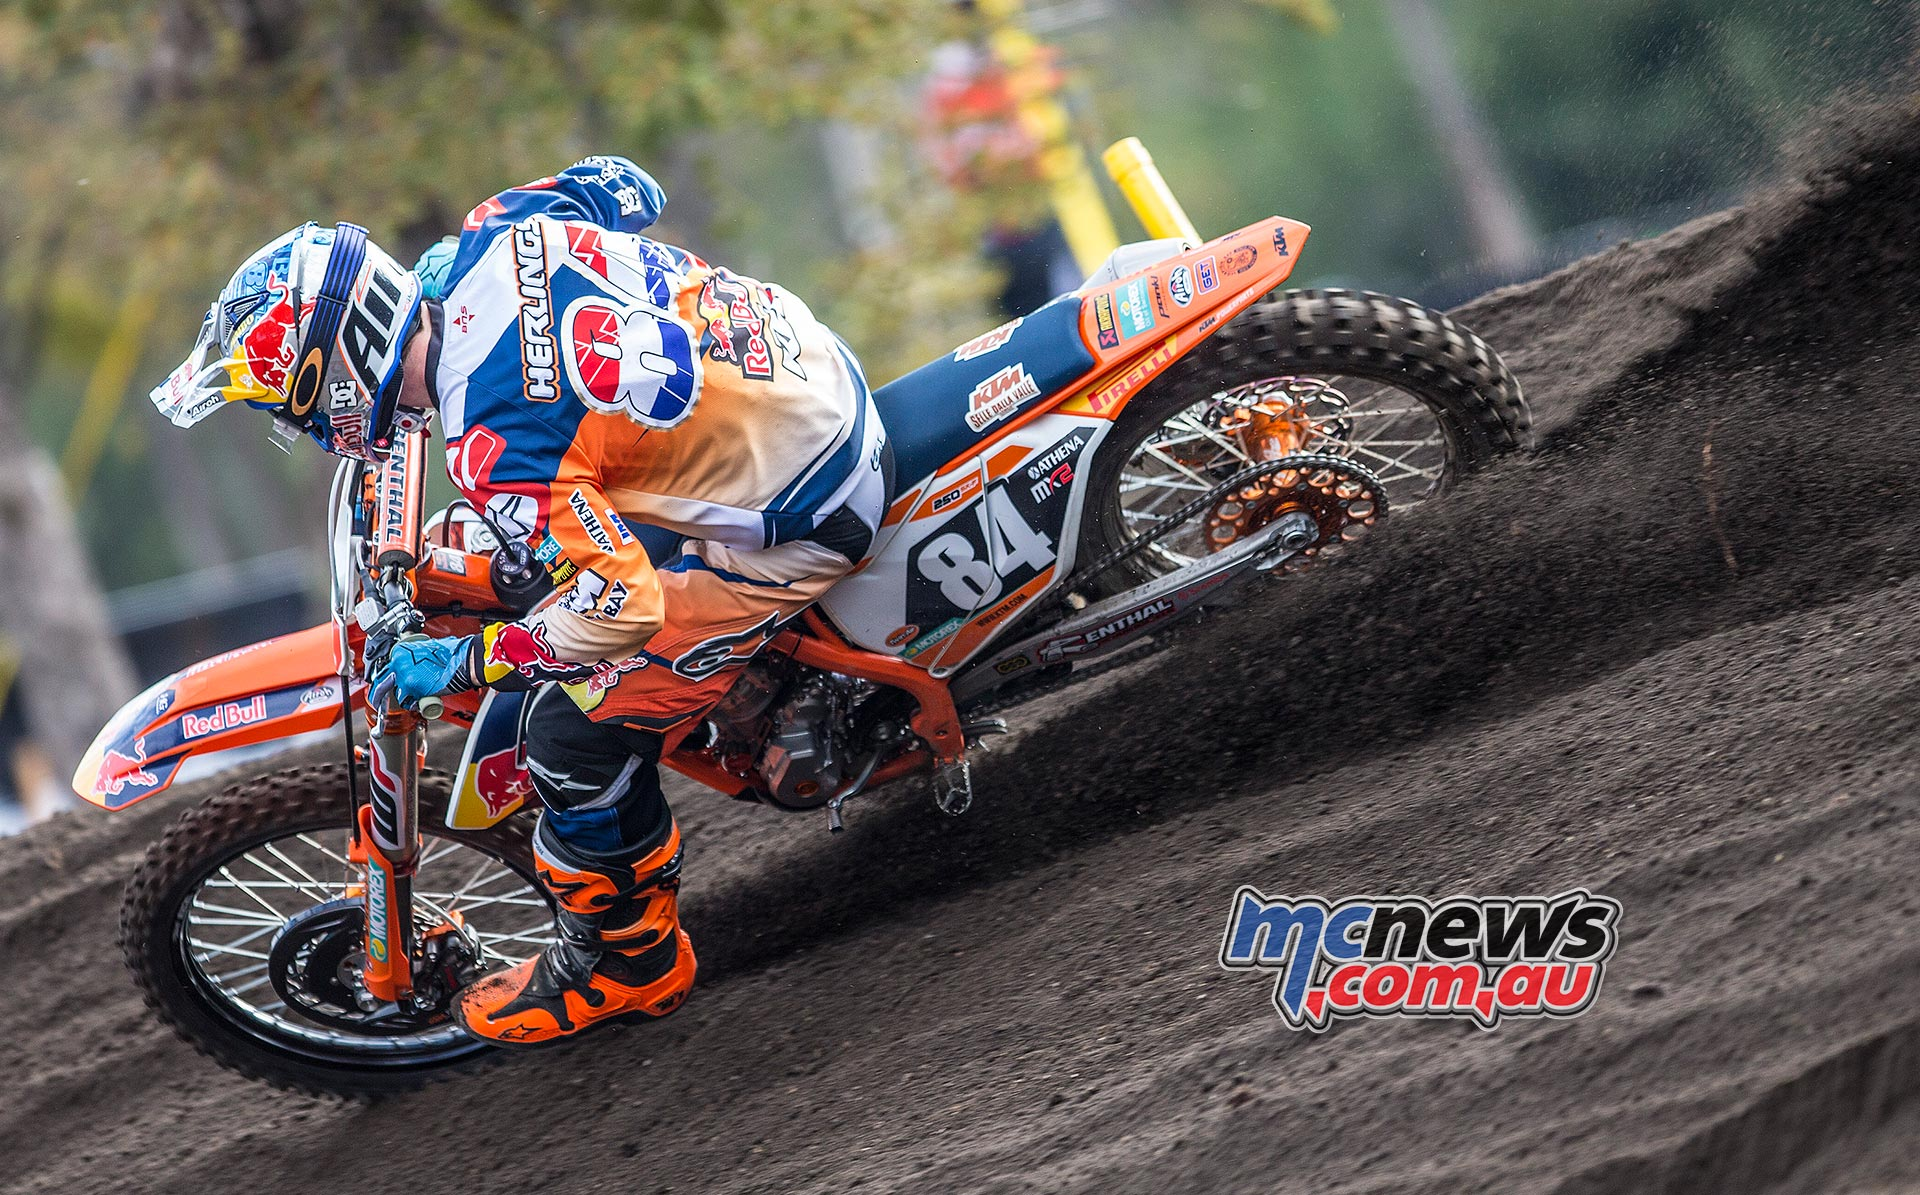 Jeffrey Herlings Signs With Ktm Through 2020 Mcnewscomau